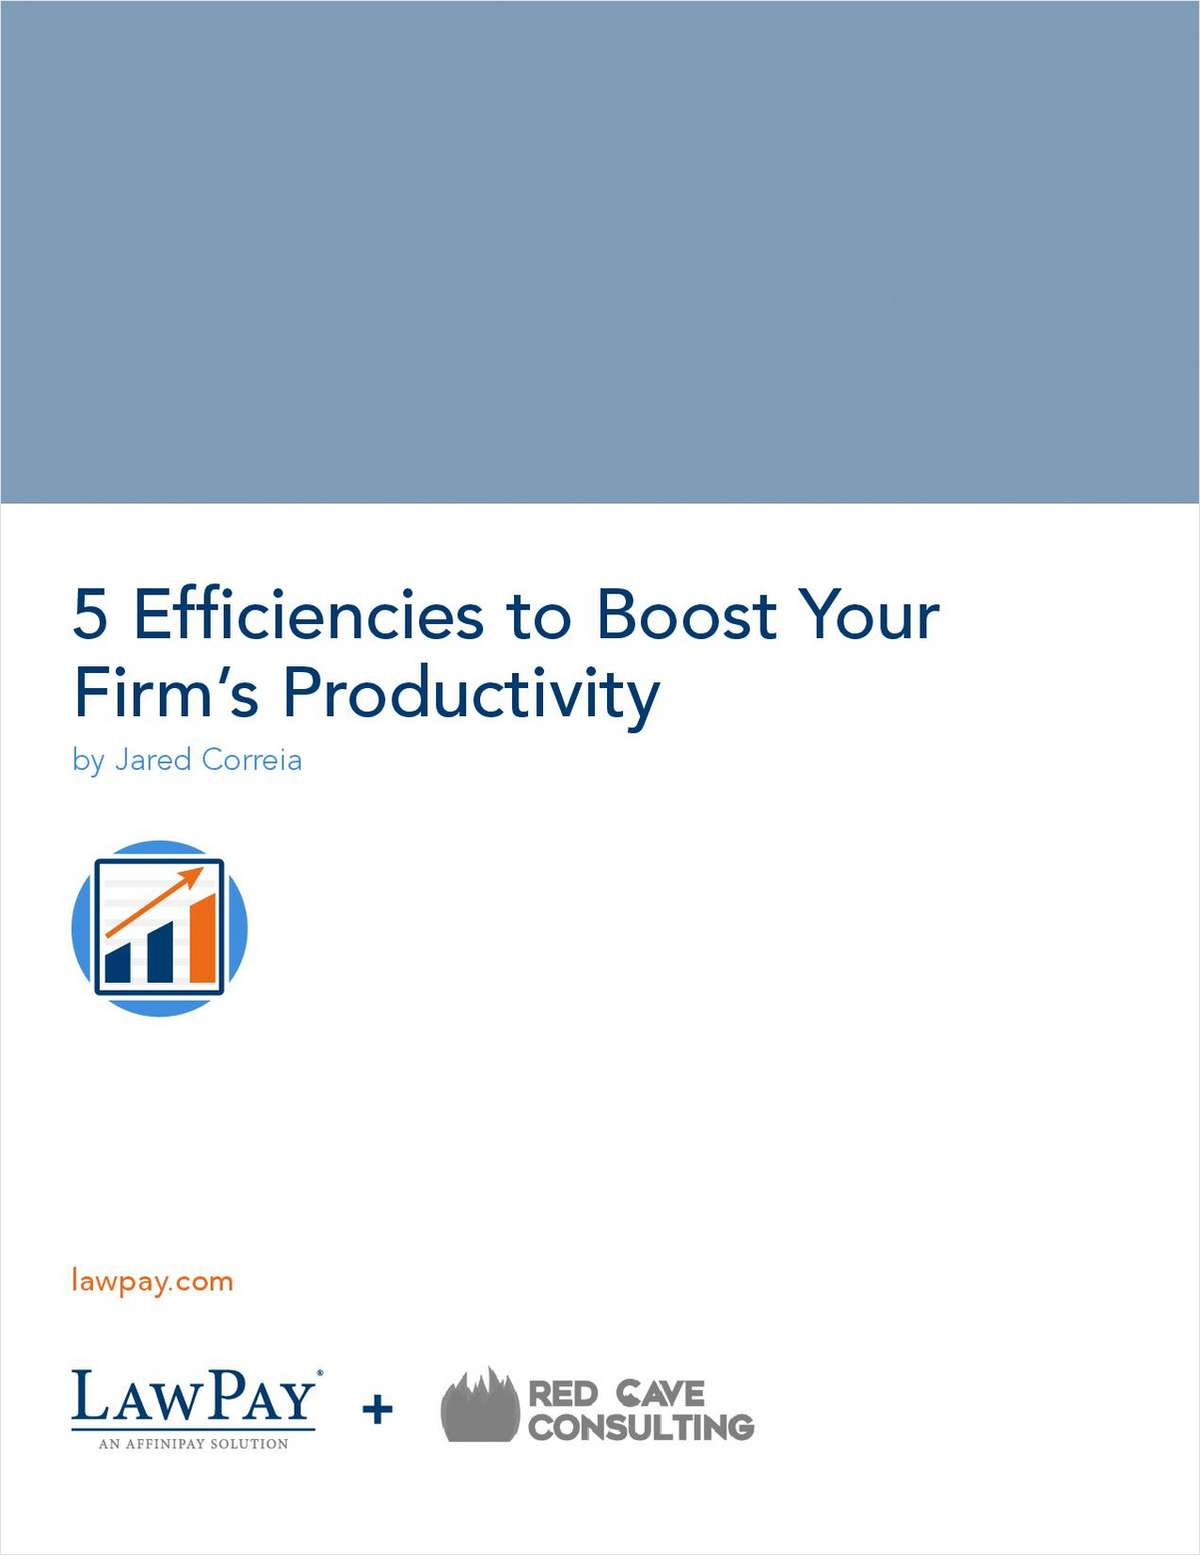 5 Efficiencies to Boost Your Firm's Productivity